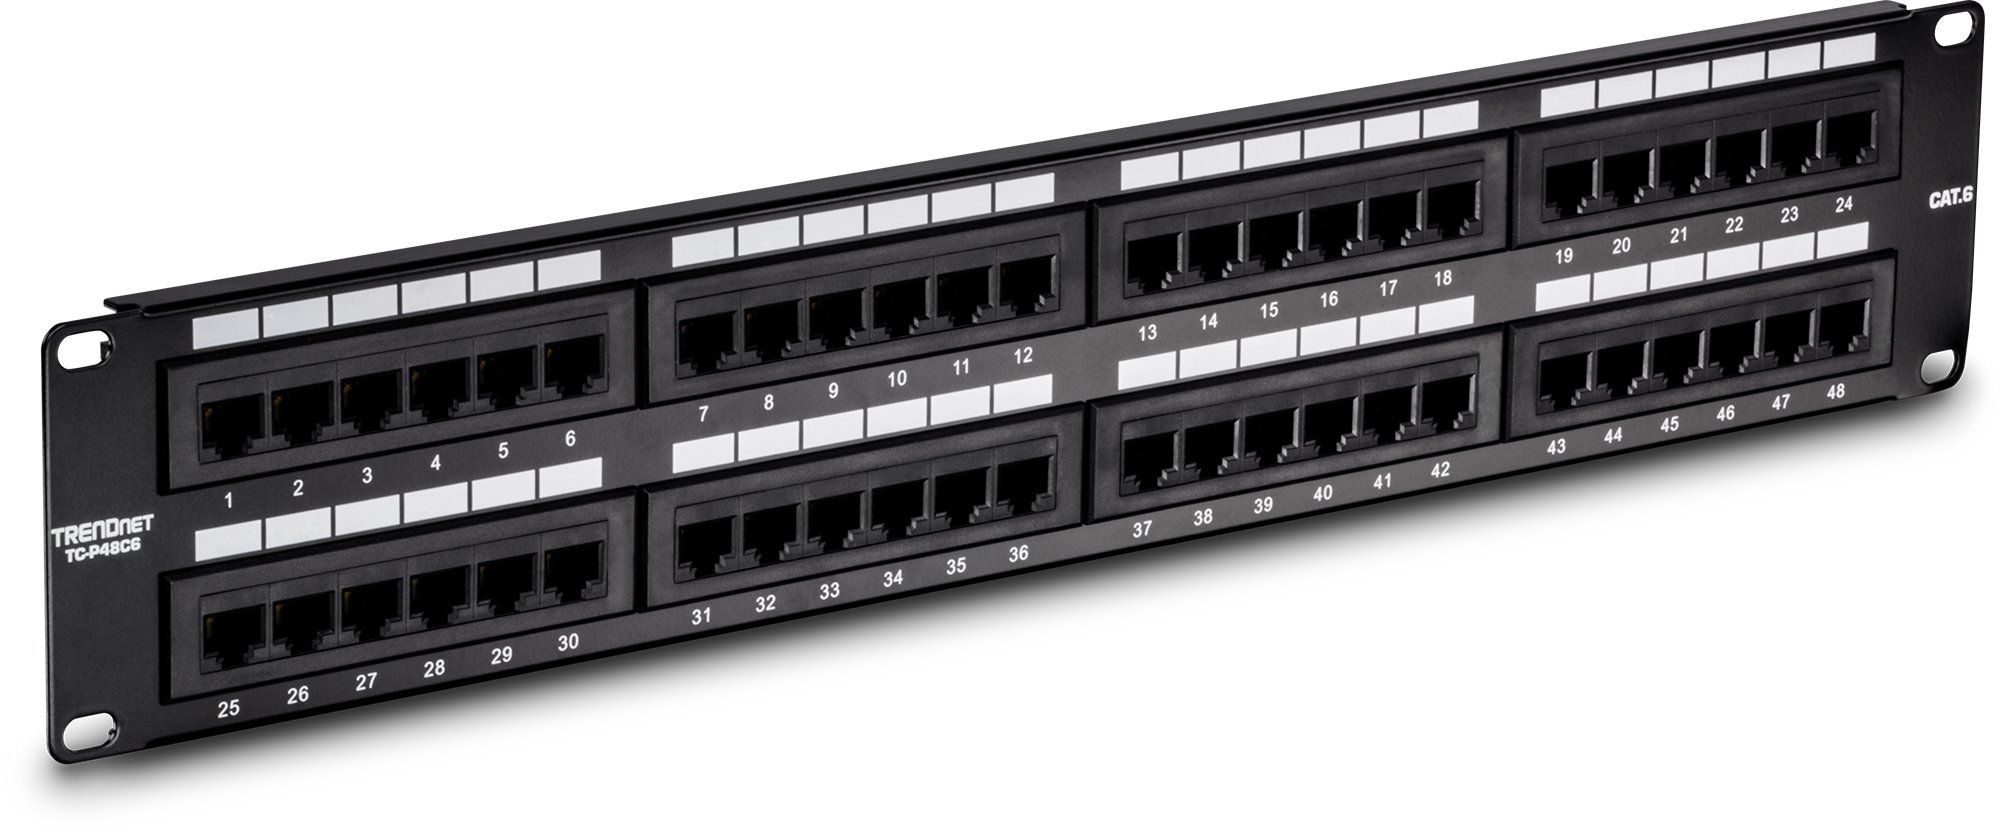 TRENDnet 48-Port Cat6 Unshielded Wallmount or Rackmount Patch Panel, Compatible with Cat 3/4/5/5e/6 Cabling, TC-P48C6